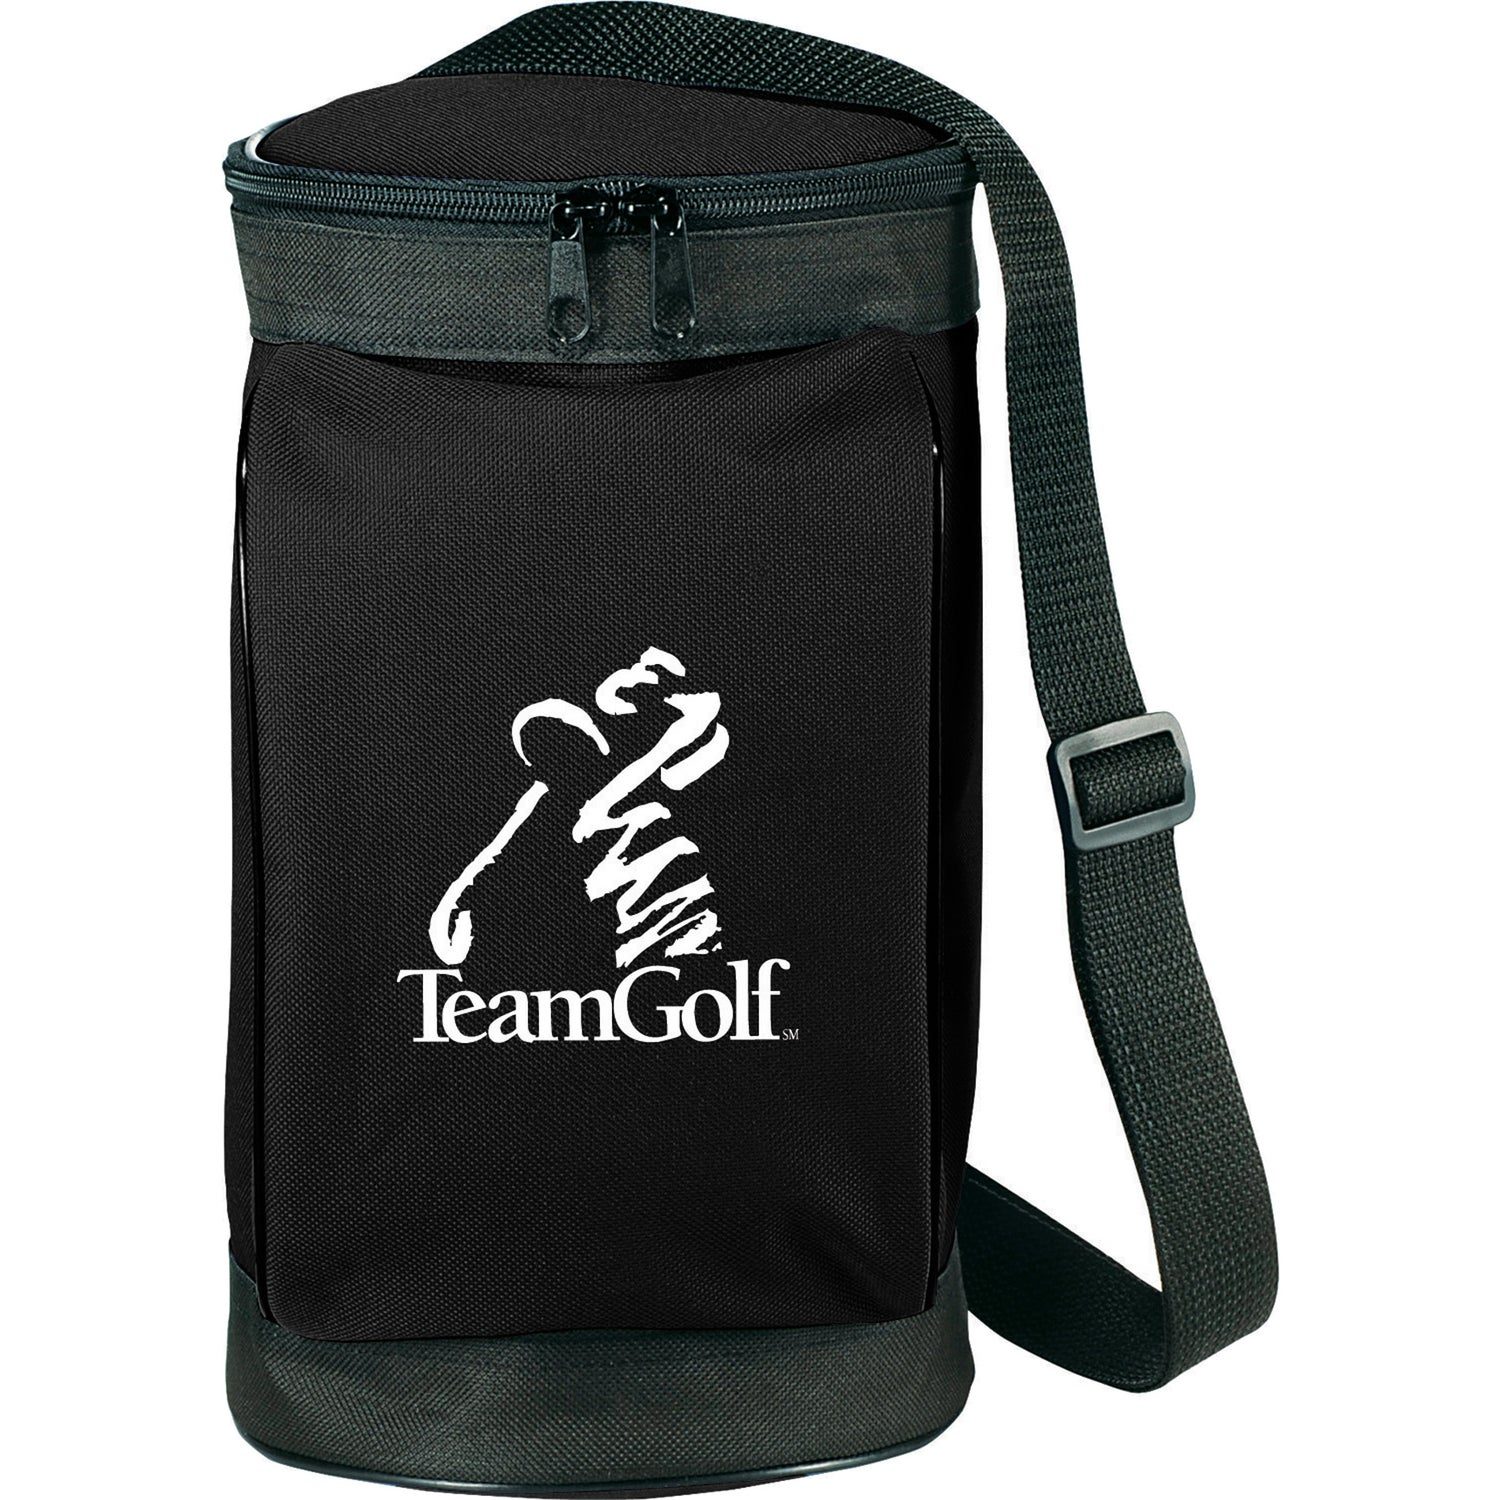 Promotional Coolers and Insulated Bags - 6 Pack Nonwoven Cooler Bag